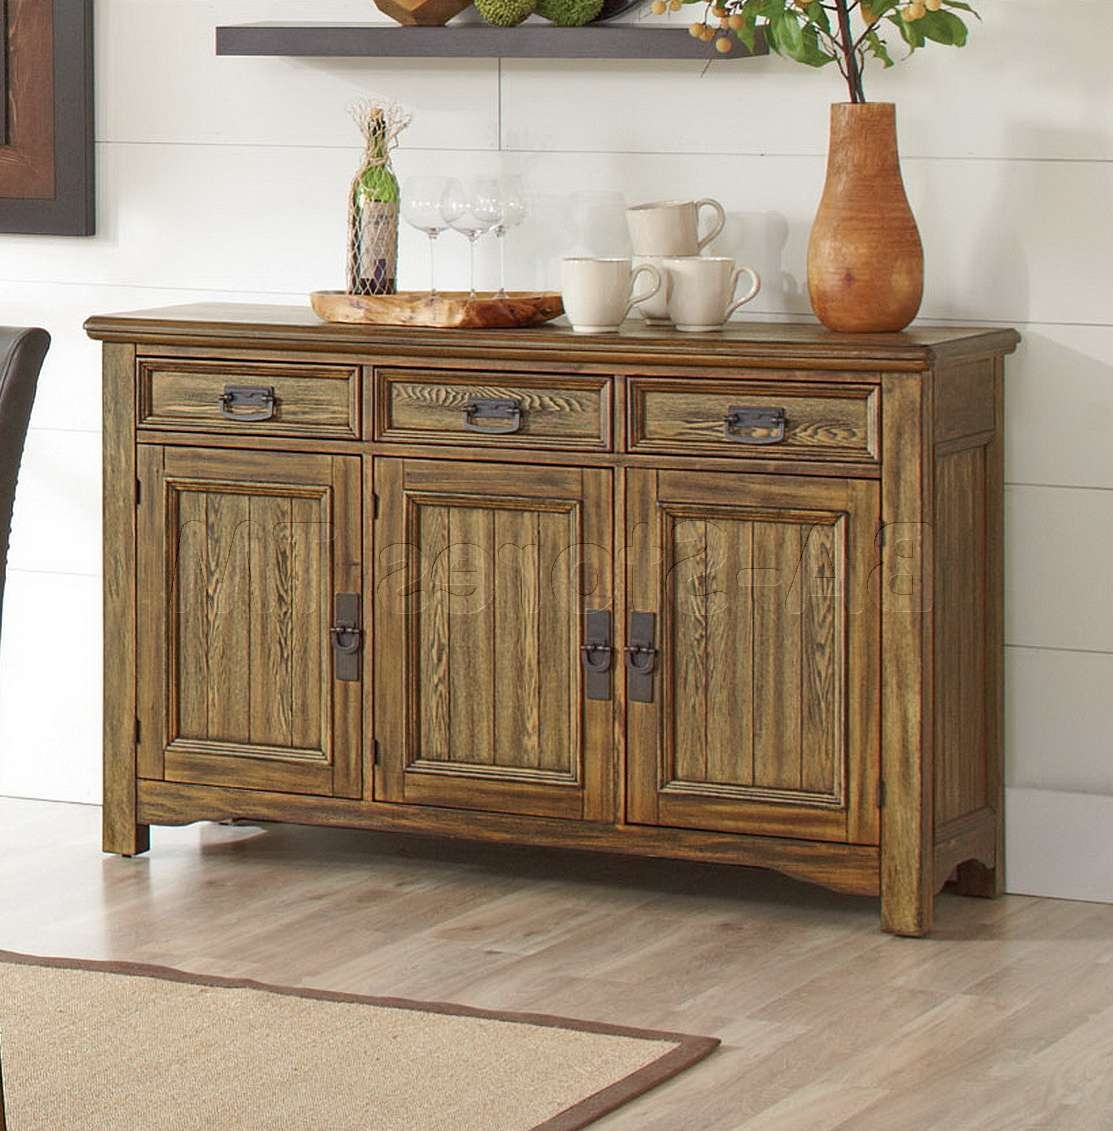 Kitchen Cabinet : Narrow Buffet Table 42 Inch Sideboard Modern Throughout 42 Inch Sideboards (View 7 of 20)